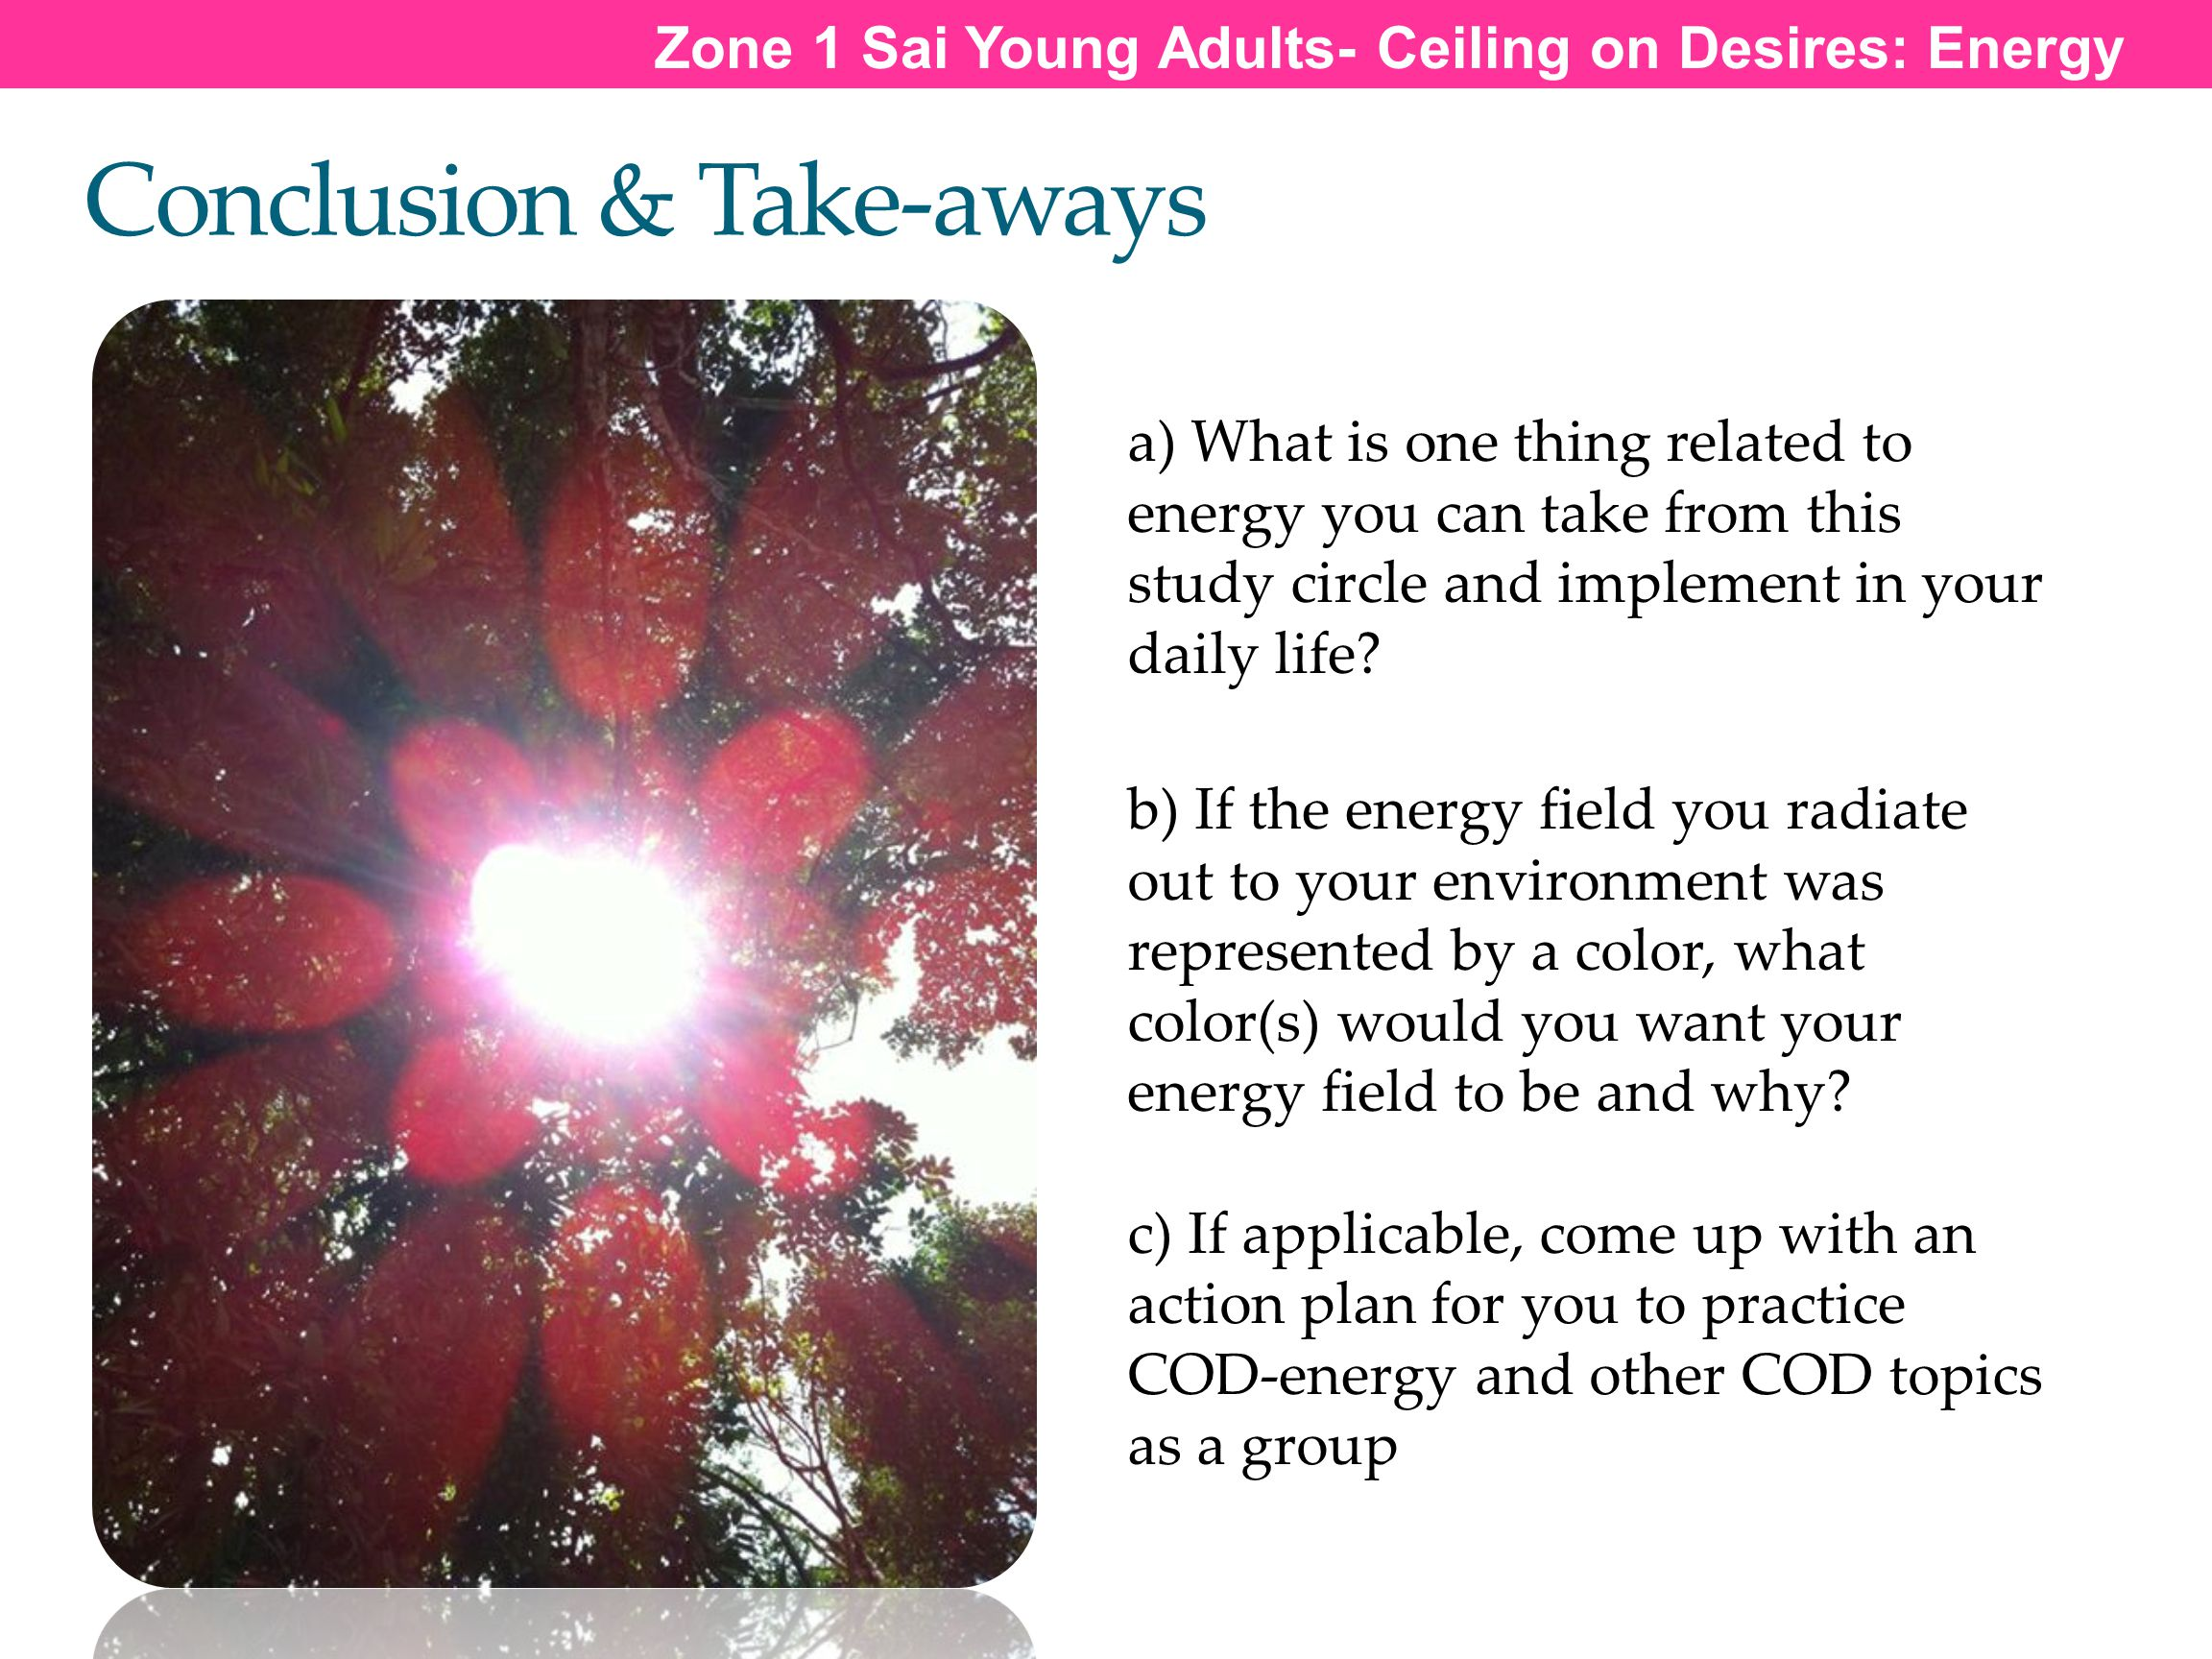 Conclusion & Take-aways a) What is one thing related to energy you can take from this study circle and implement in your daily life? b) If the energy